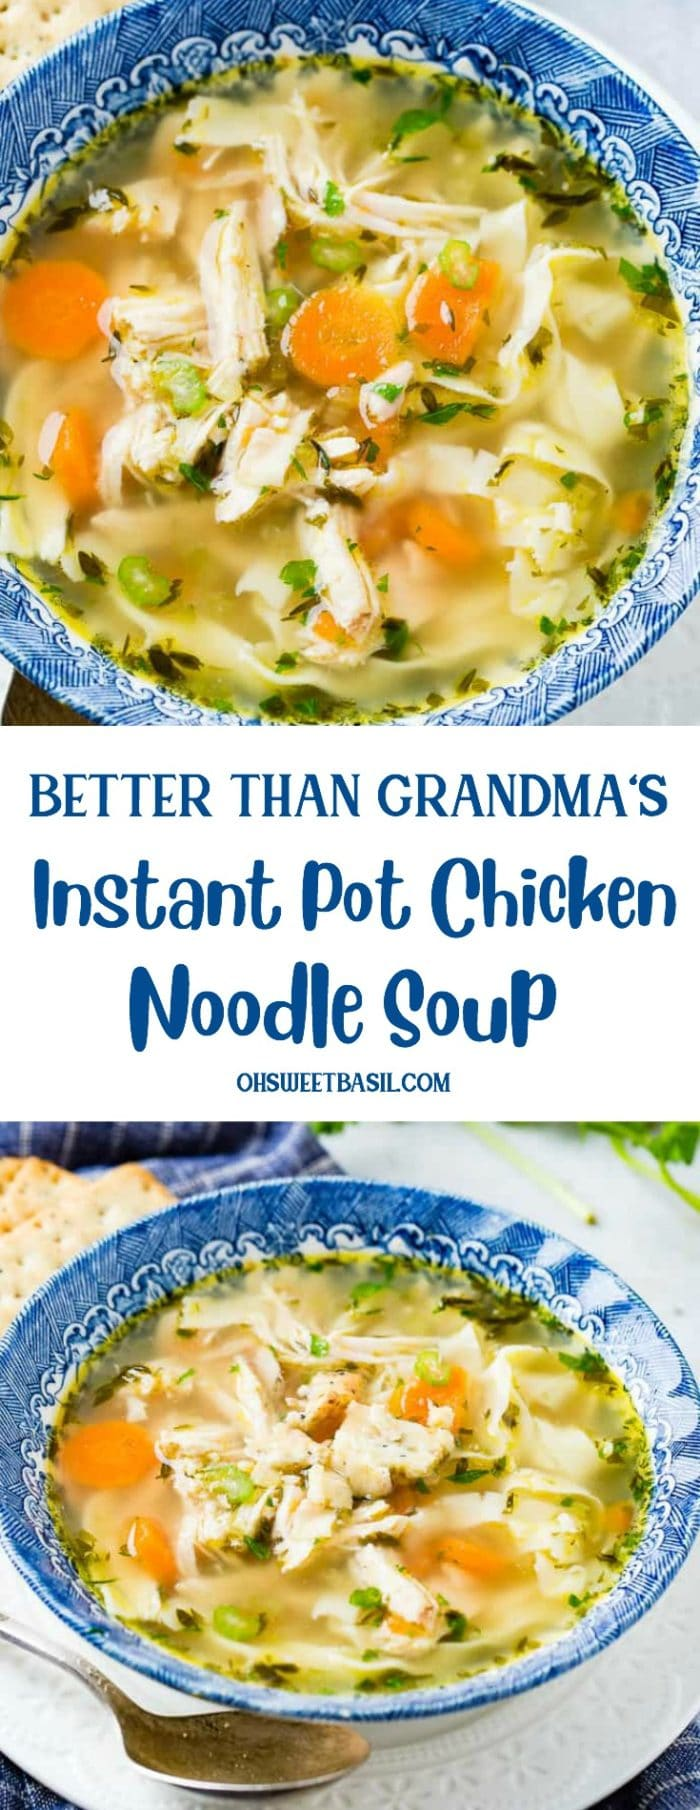 I mean, I don't know your Grandma or her soup, but after years of disappointing chicken noodle soups this Instant Pot Chicken Noodle Soup is worthy of the blog!